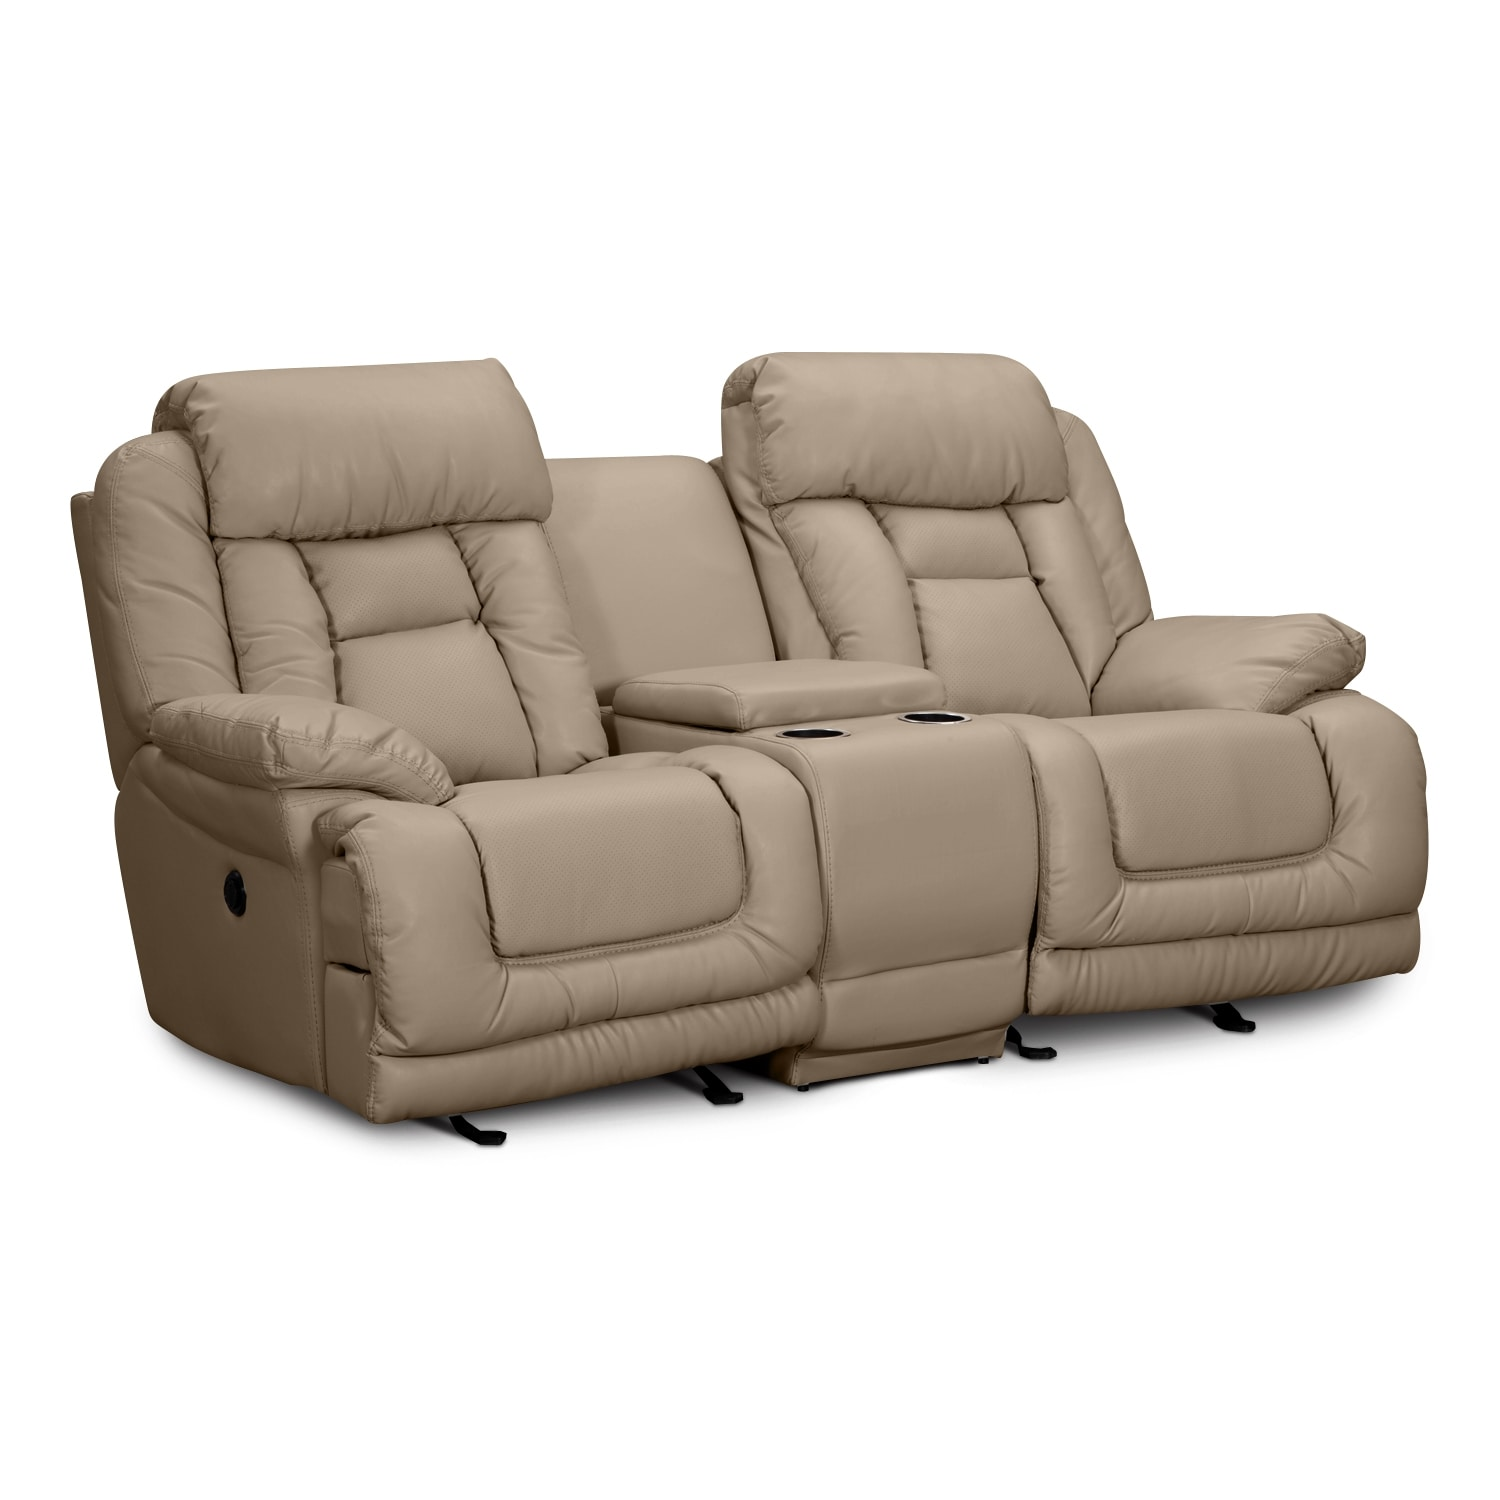 Value city furniture Leather loveseat recliners